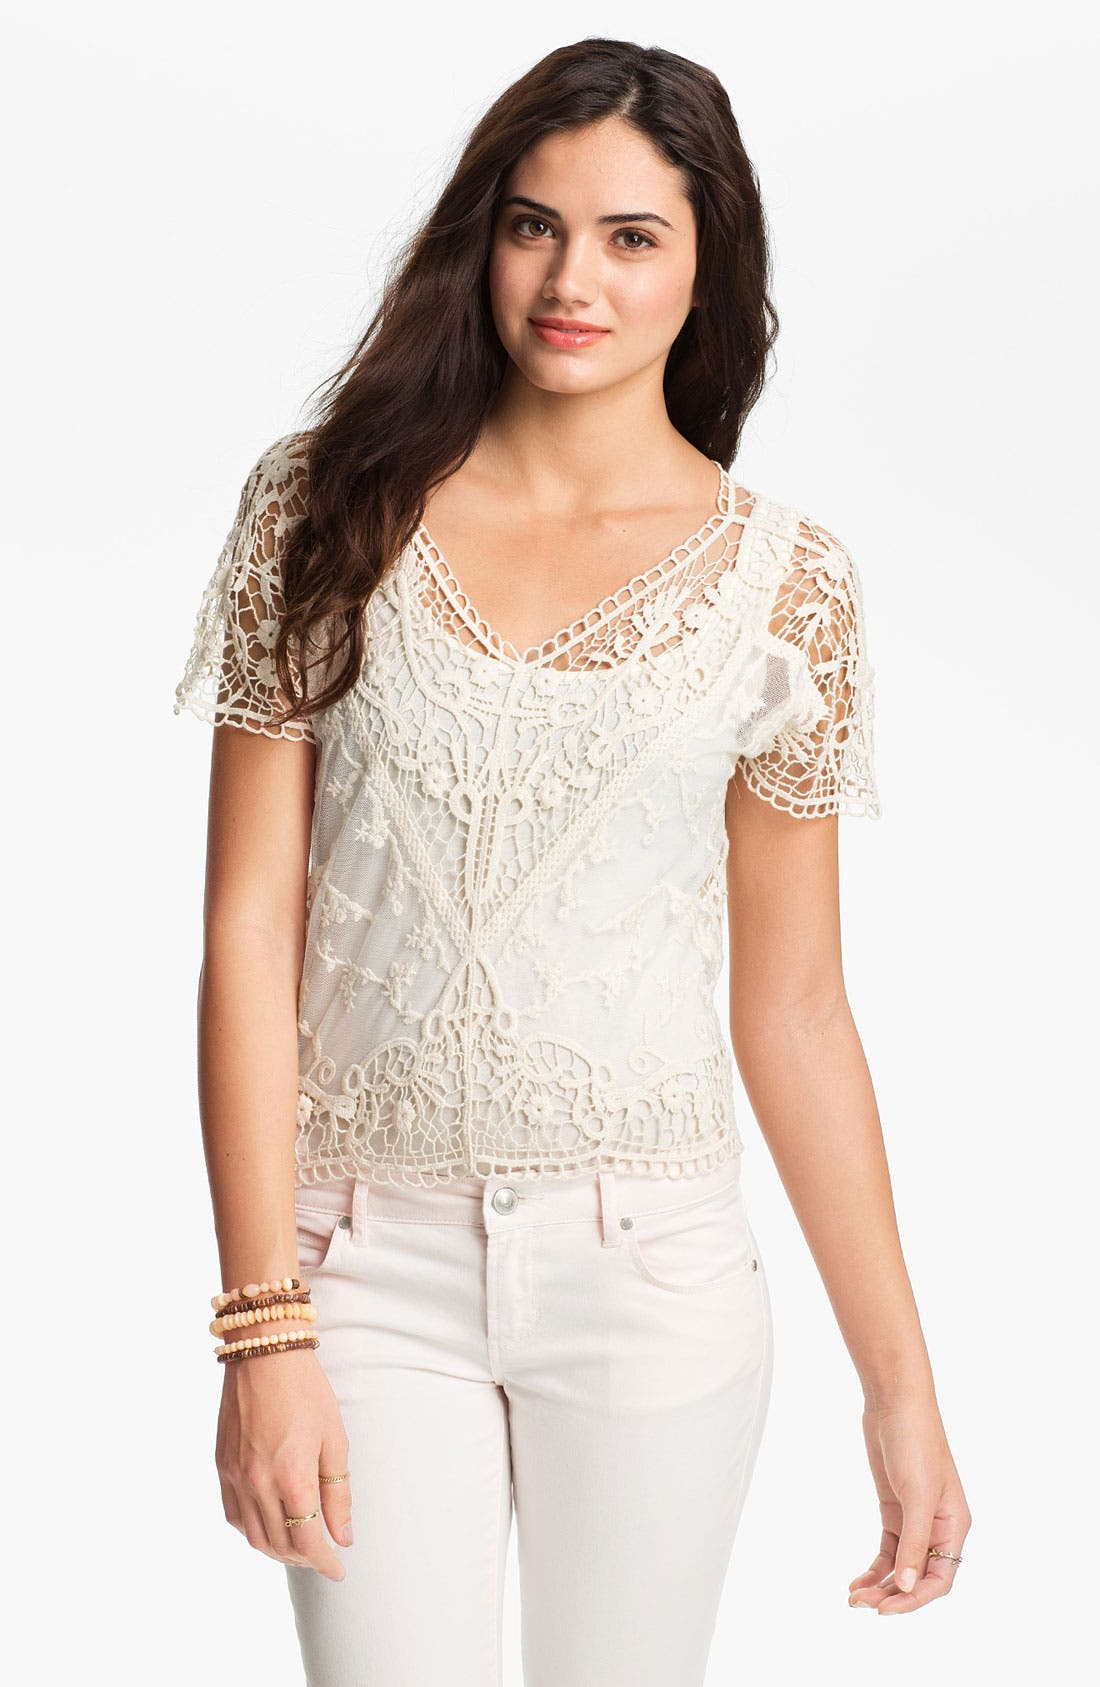 Main Image - Absolutely Cotton Crochet Lace Top (Juniors)